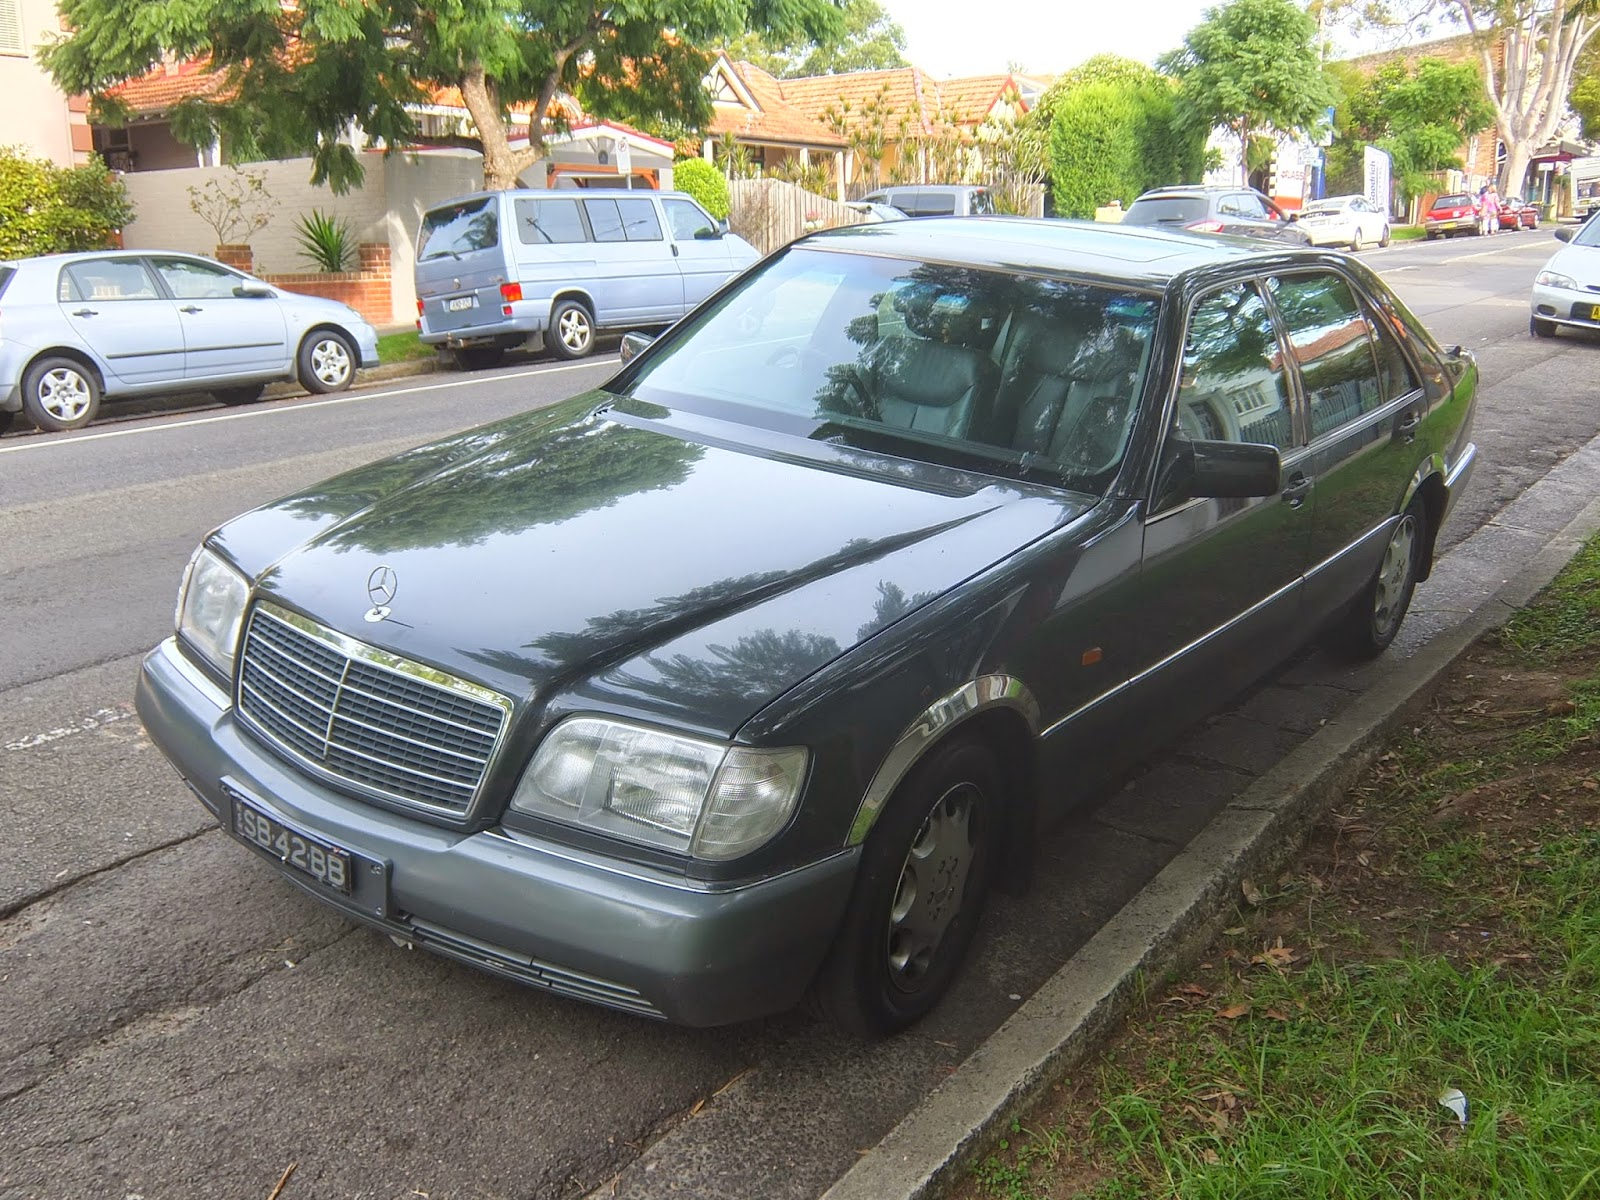 aussie old parked cars 1992 mercedes benz w140 400 sel. Black Bedroom Furniture Sets. Home Design Ideas